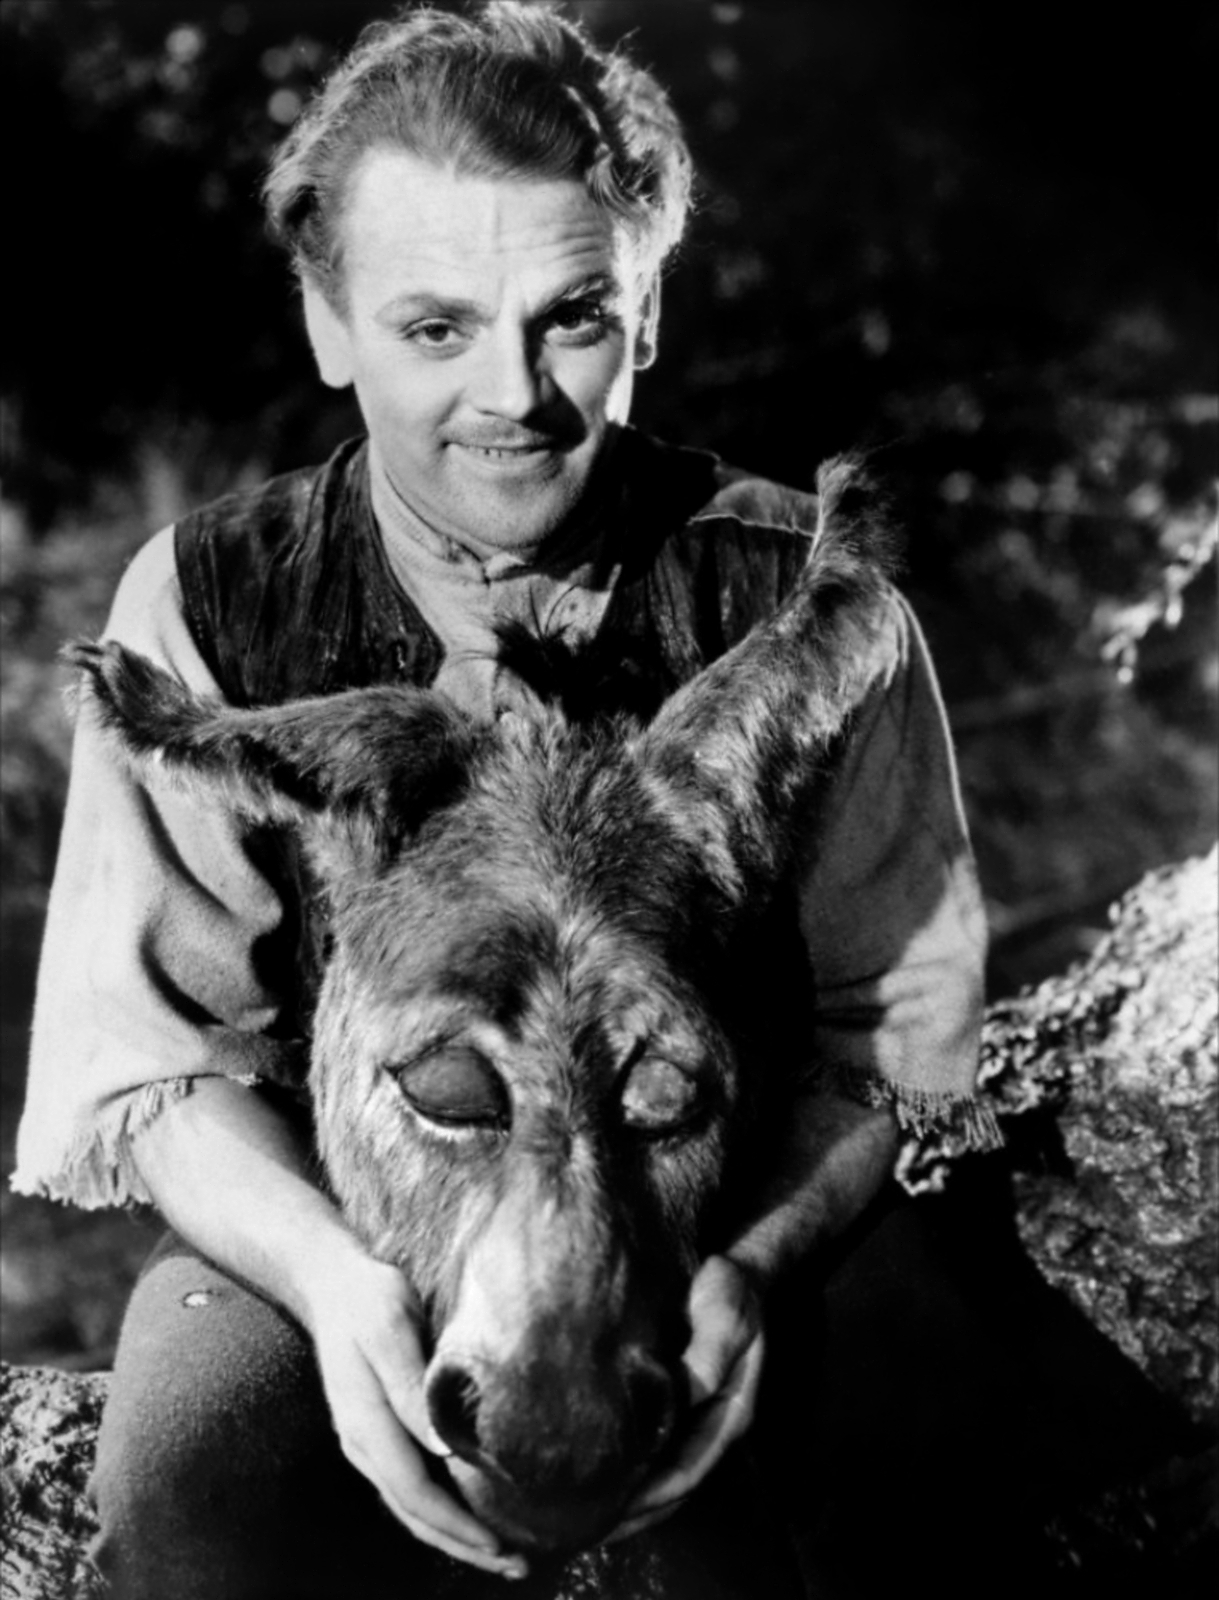 http://www.doctormacro.com/Images/Cagney,%20James/Annex/Annex%20-%20Cagney,%20James%20(A%20Midsummer%20Night%27s%20Dream)_02.jpg